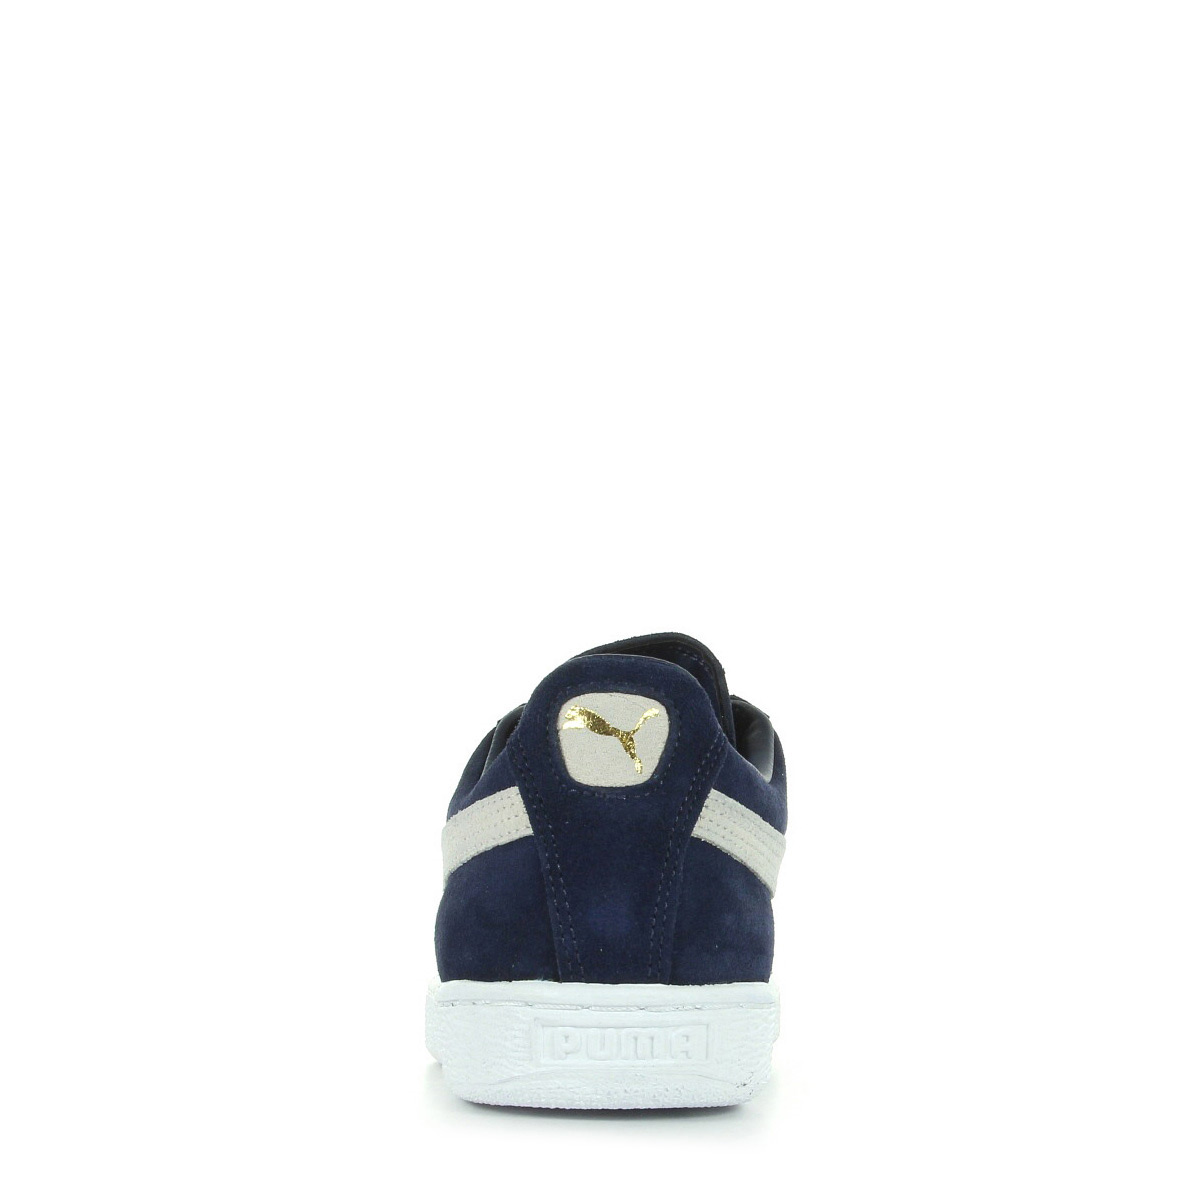 separation shoes 01e58 0eee5 Chaussures-Baskets-Puma-femme-Suede-Classic-taille-Bleu-